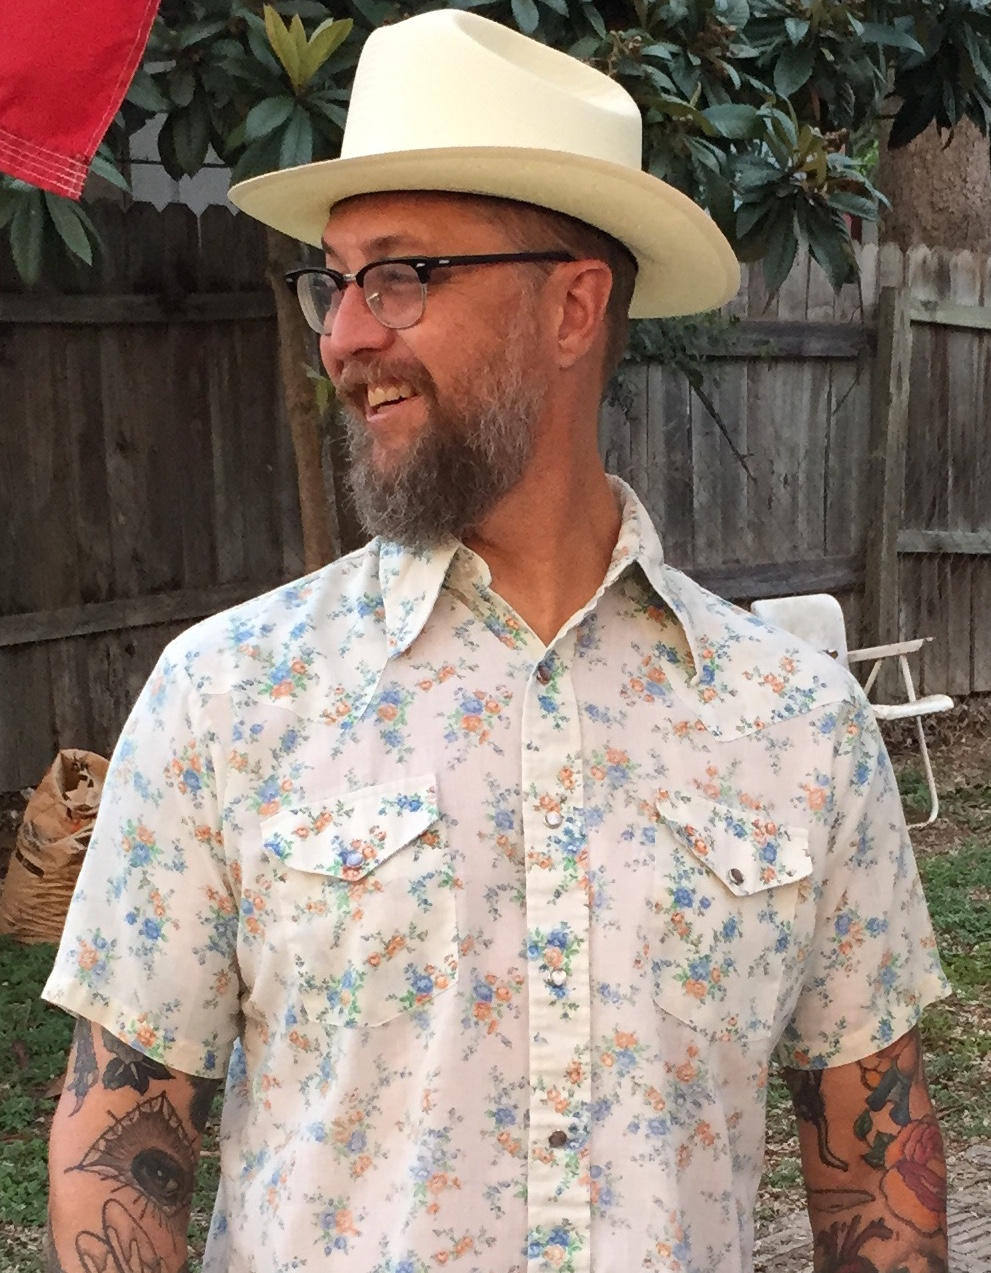 Keith, Proprietor: Keith has been riding bikes in Austin for almost 30 years. There's not a bike path or BBQ joint in the city that he doesn't know about. Your fun is his first priority.